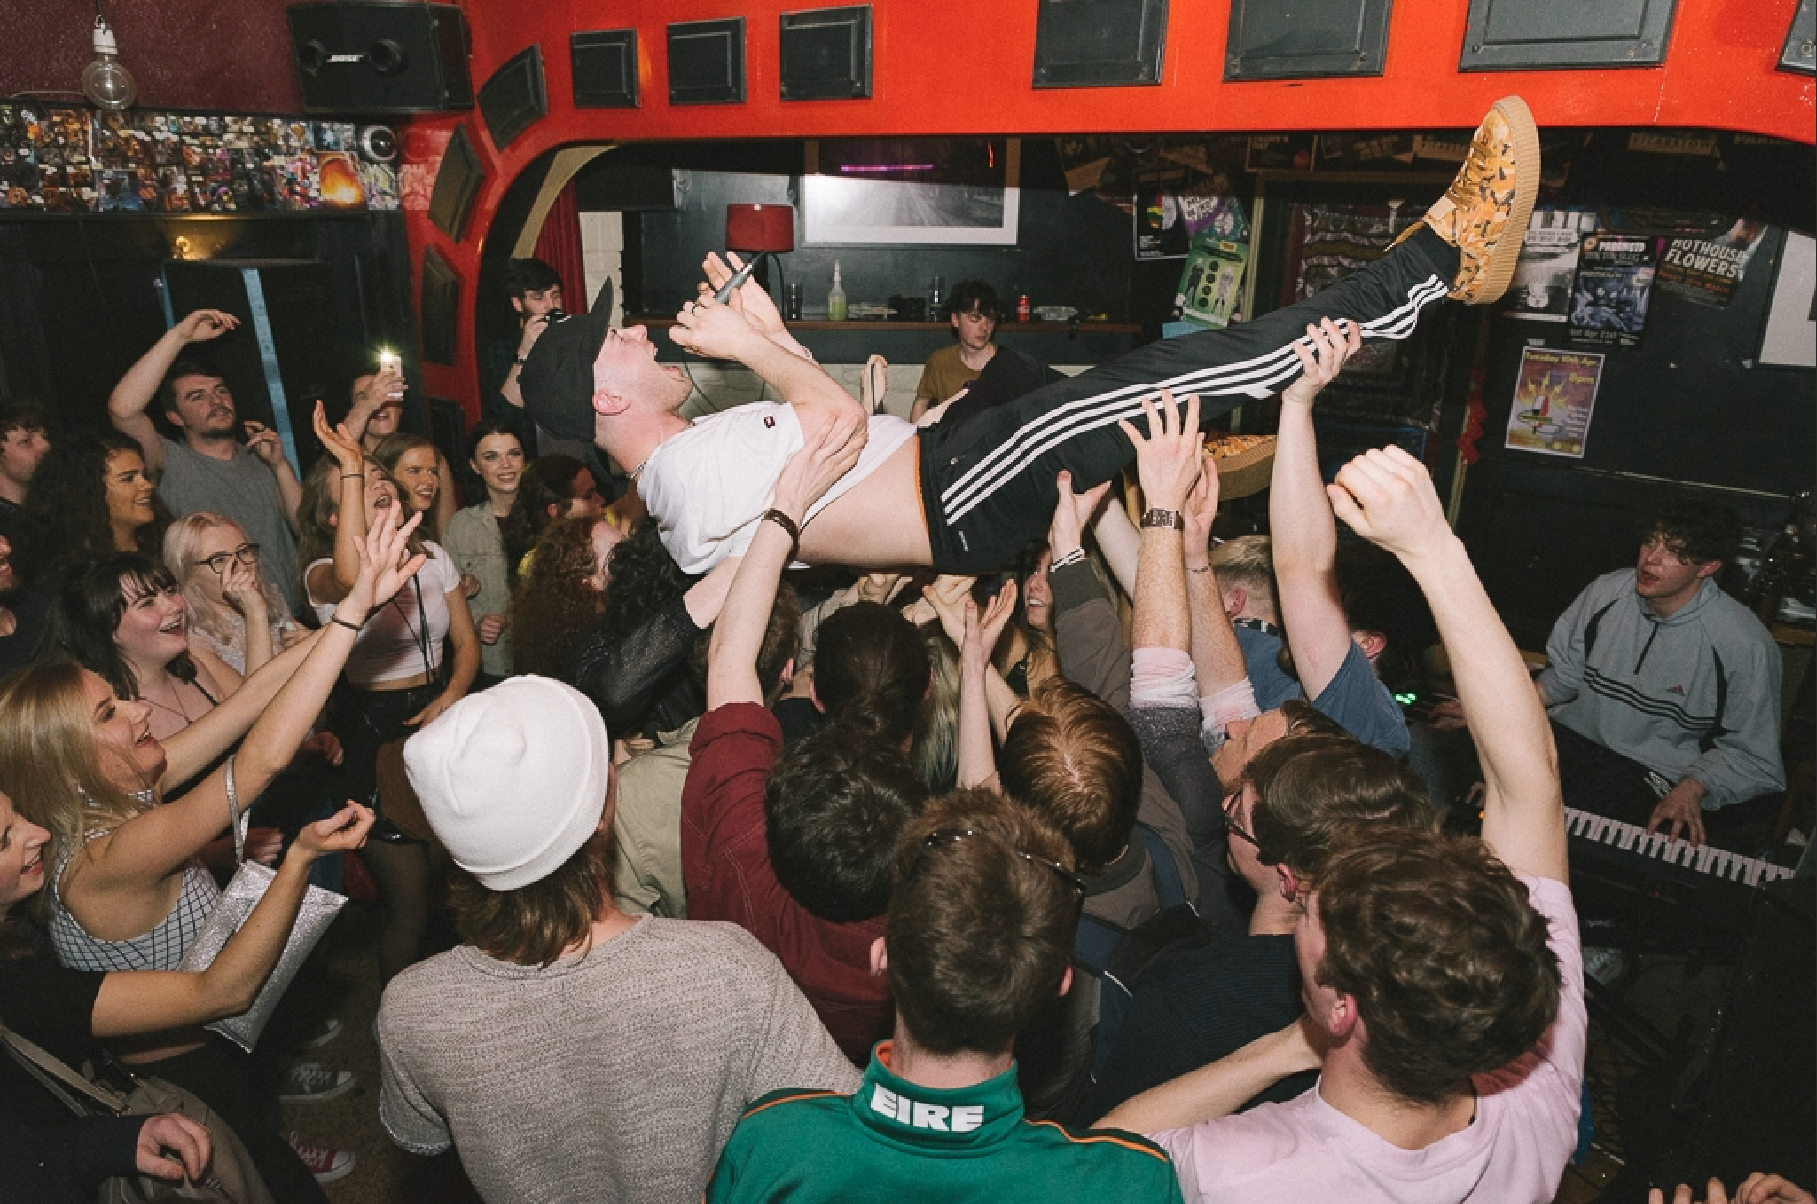 After a thrilling night, frontman Baxter couldn't resist jumping on to the crowd. Photo by Nicholas O'Donnell.